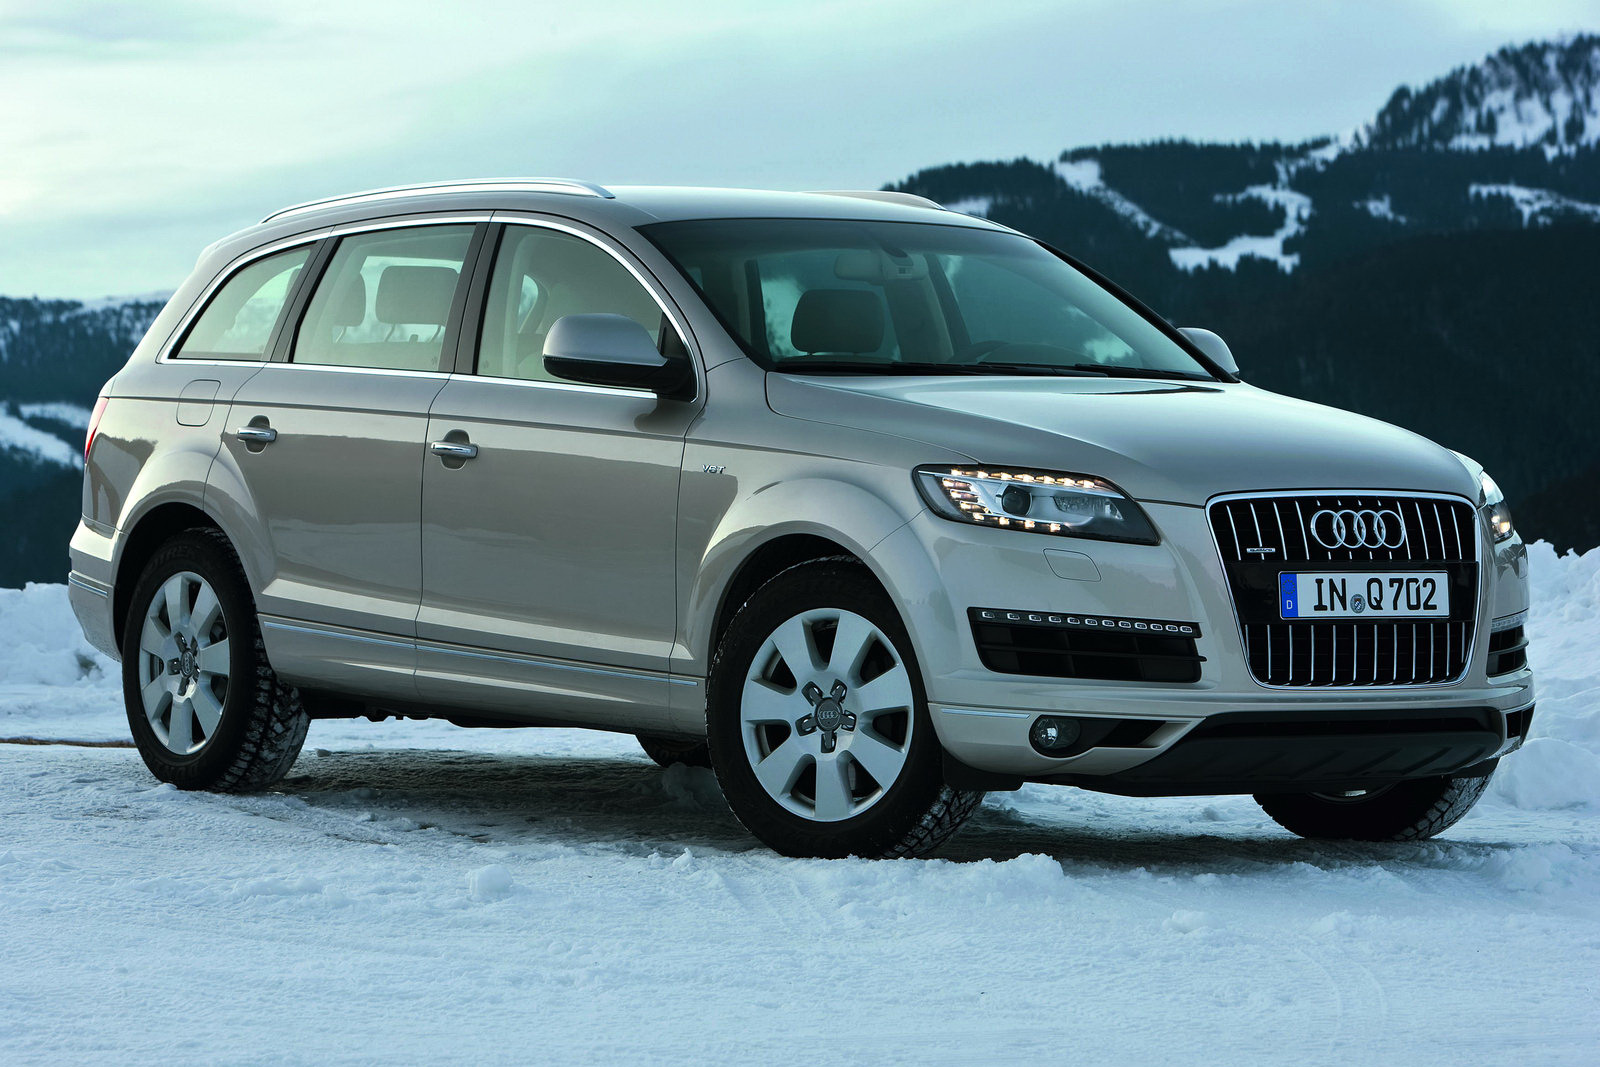 Audi suv small cars 2011